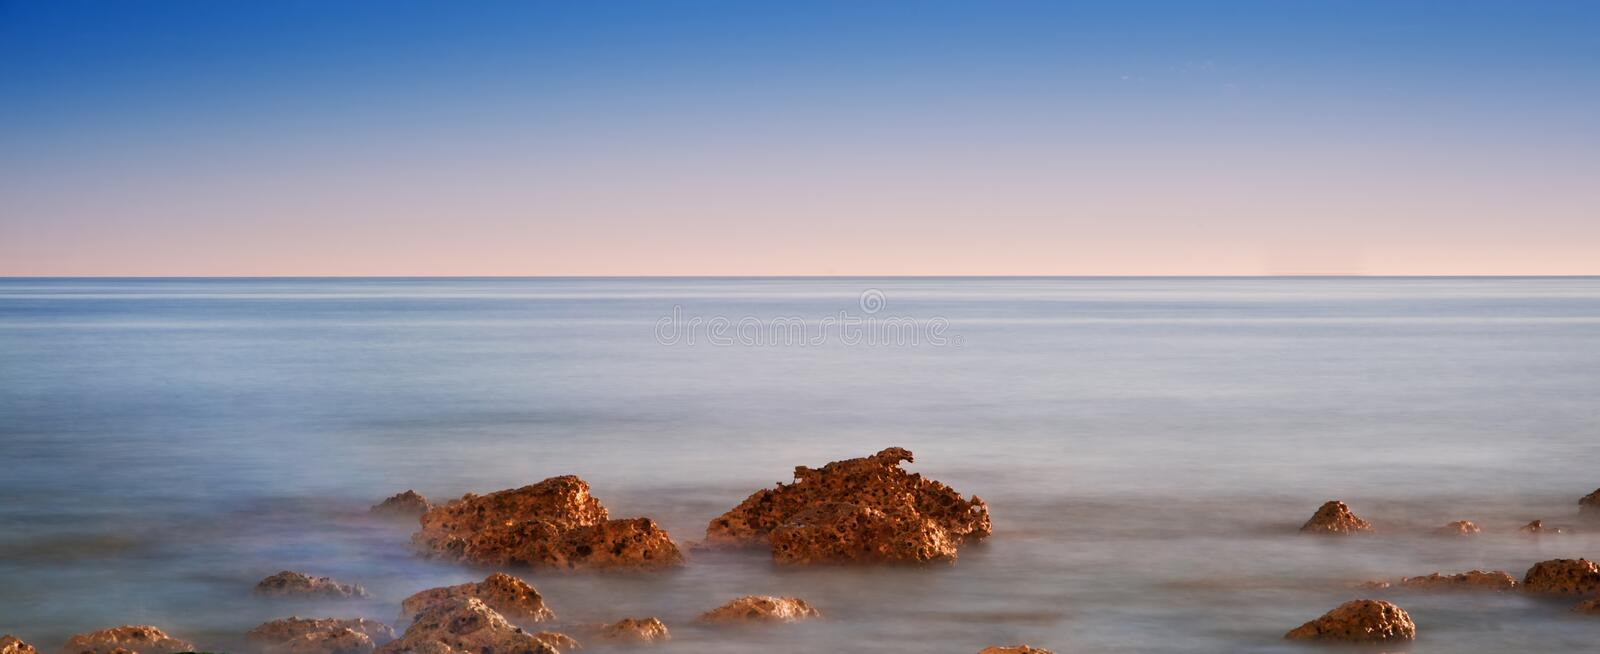 Download Beautiful Sunset Over Summer Ocean Stock Images - Image: 26877624